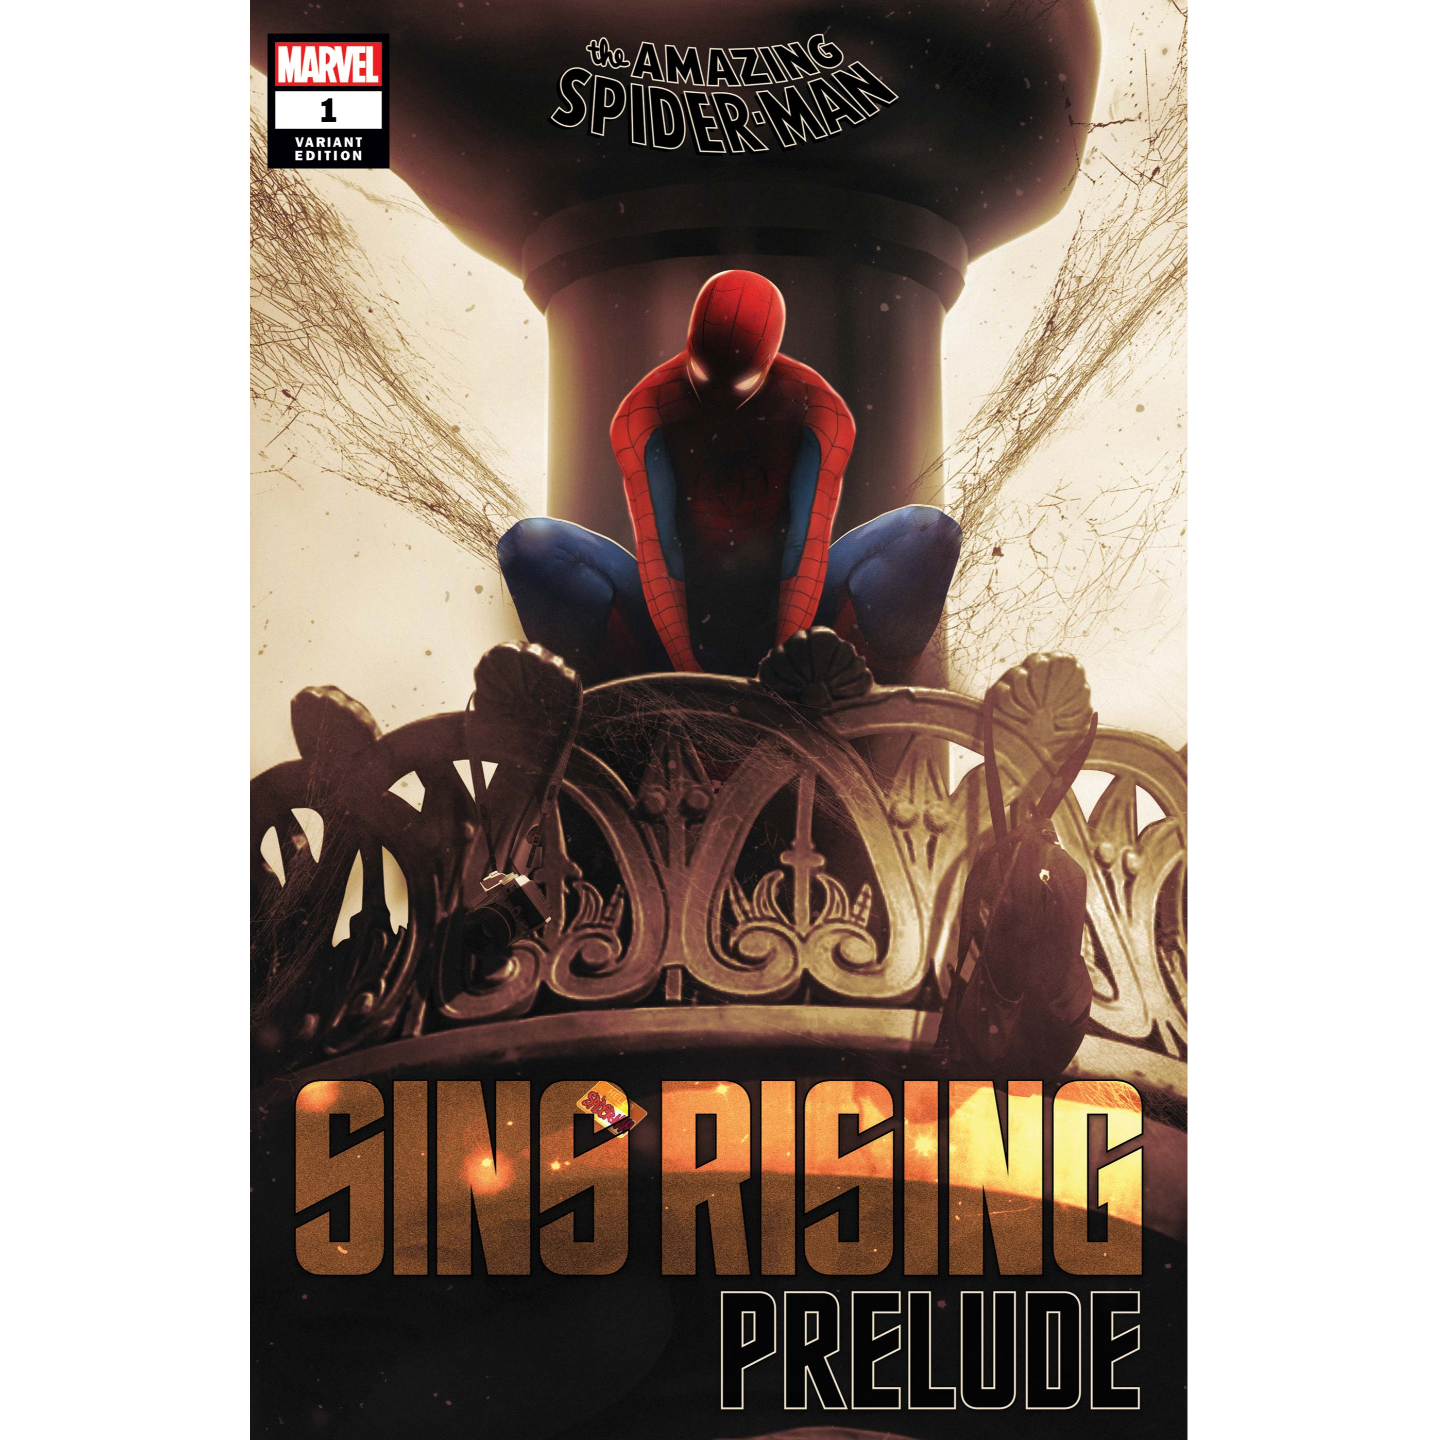 AMAZING SPIDER-MAN SINS RISING PRELUDE #1 BOSS LOGIC VAR